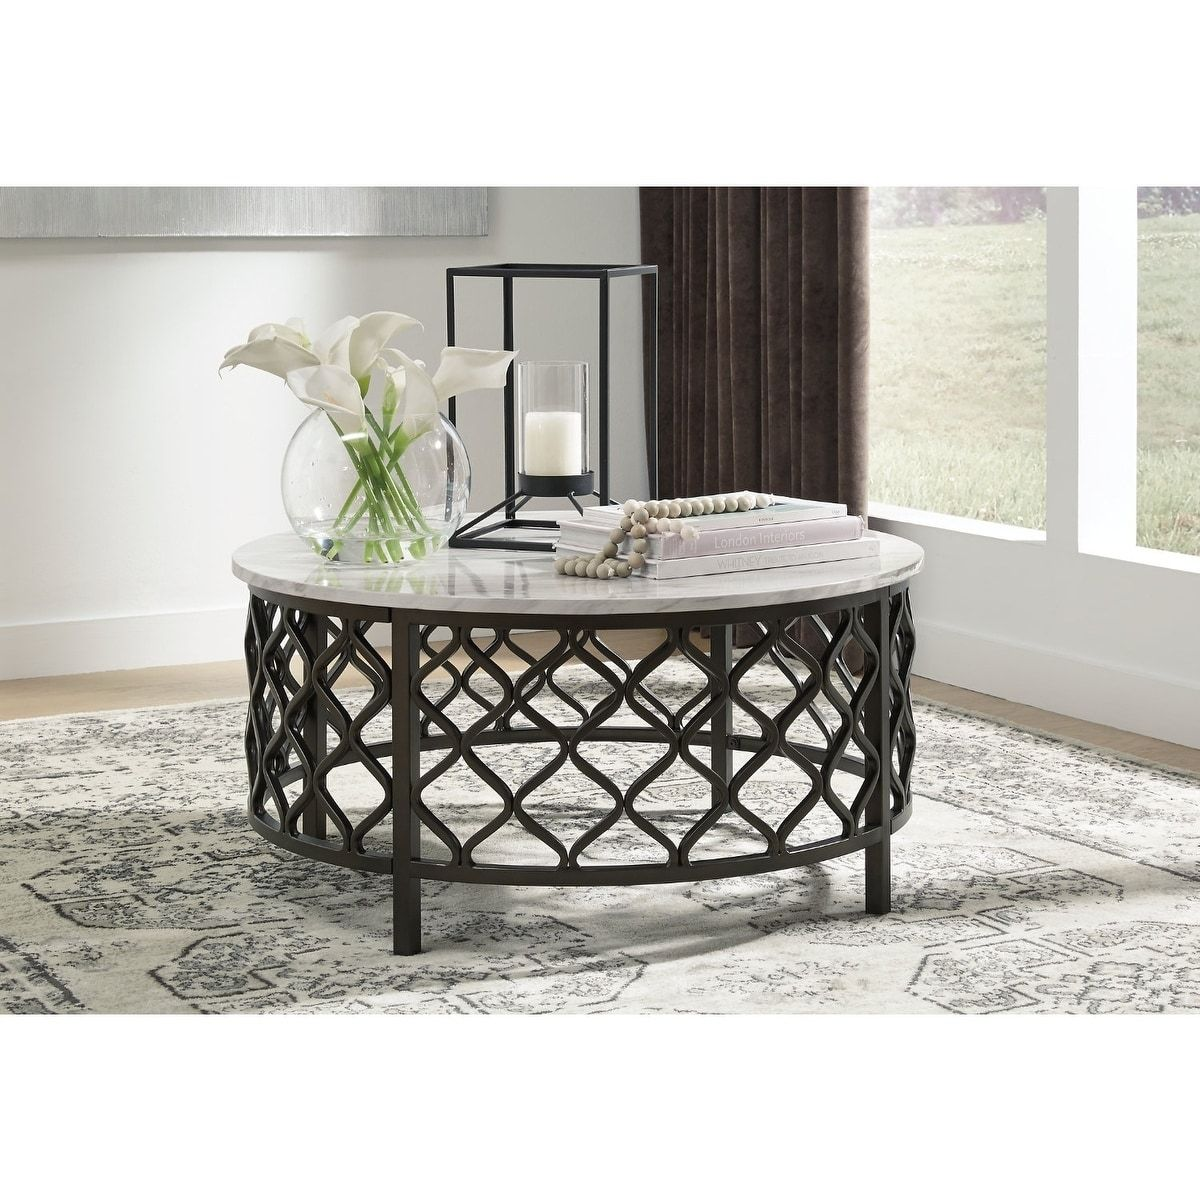 Trinson Faux Marble Round Cocktail Table Gray Signature Design By Ashley Round Coffee Table Simple Coffee Table Table